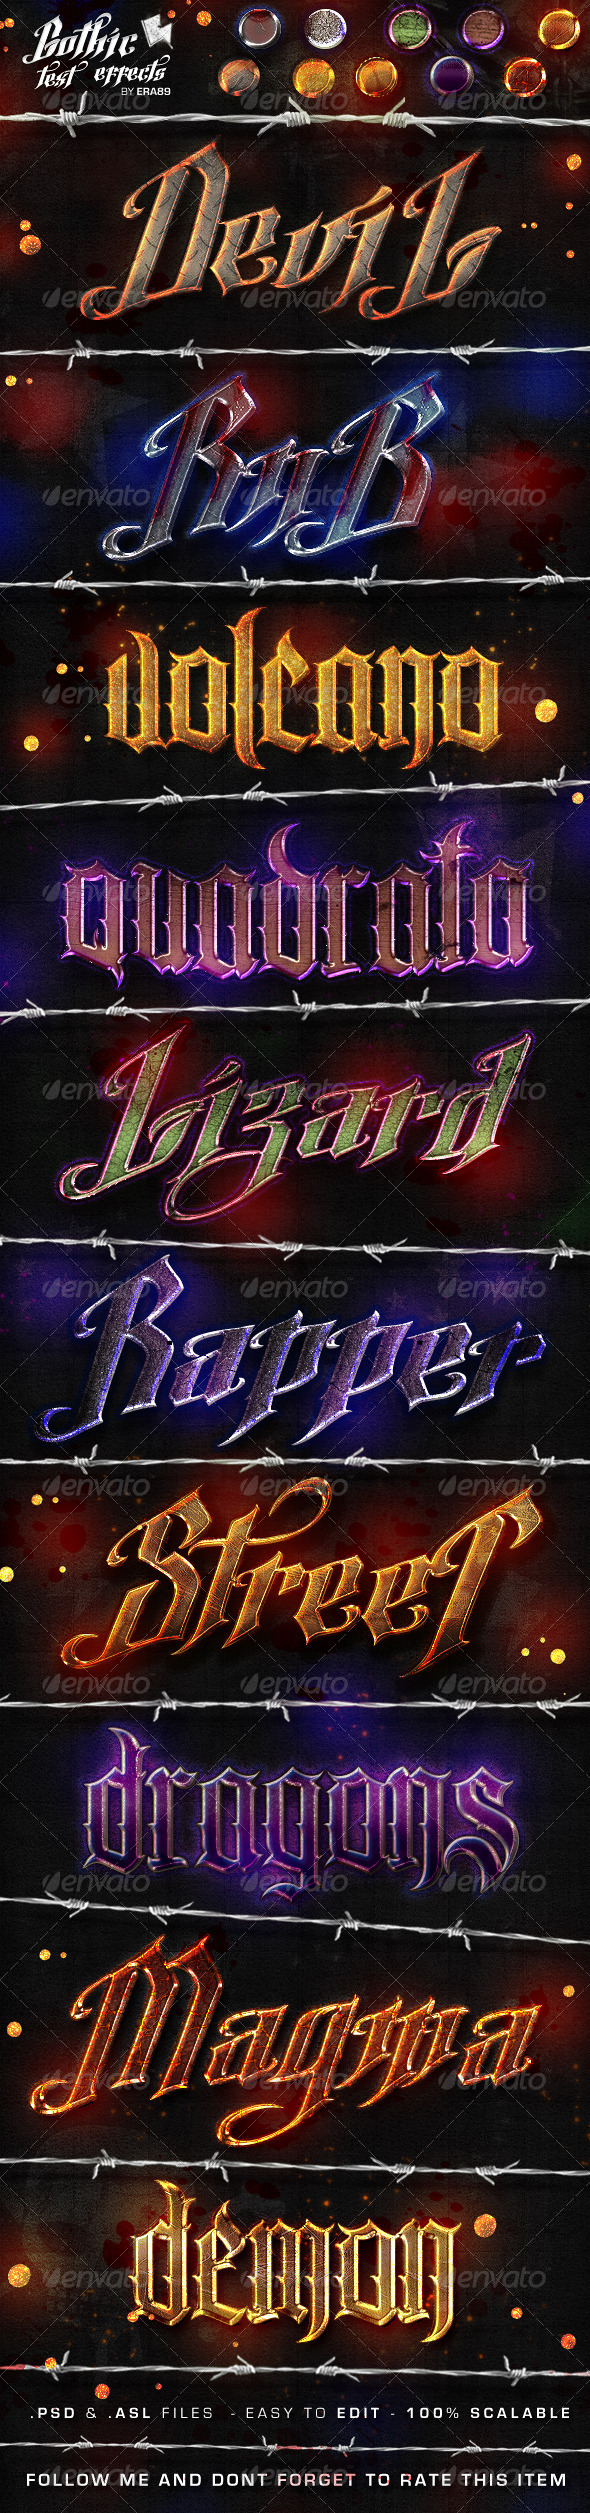 Gothic Text Effects - Photoshop Styles - Text Effects Styles